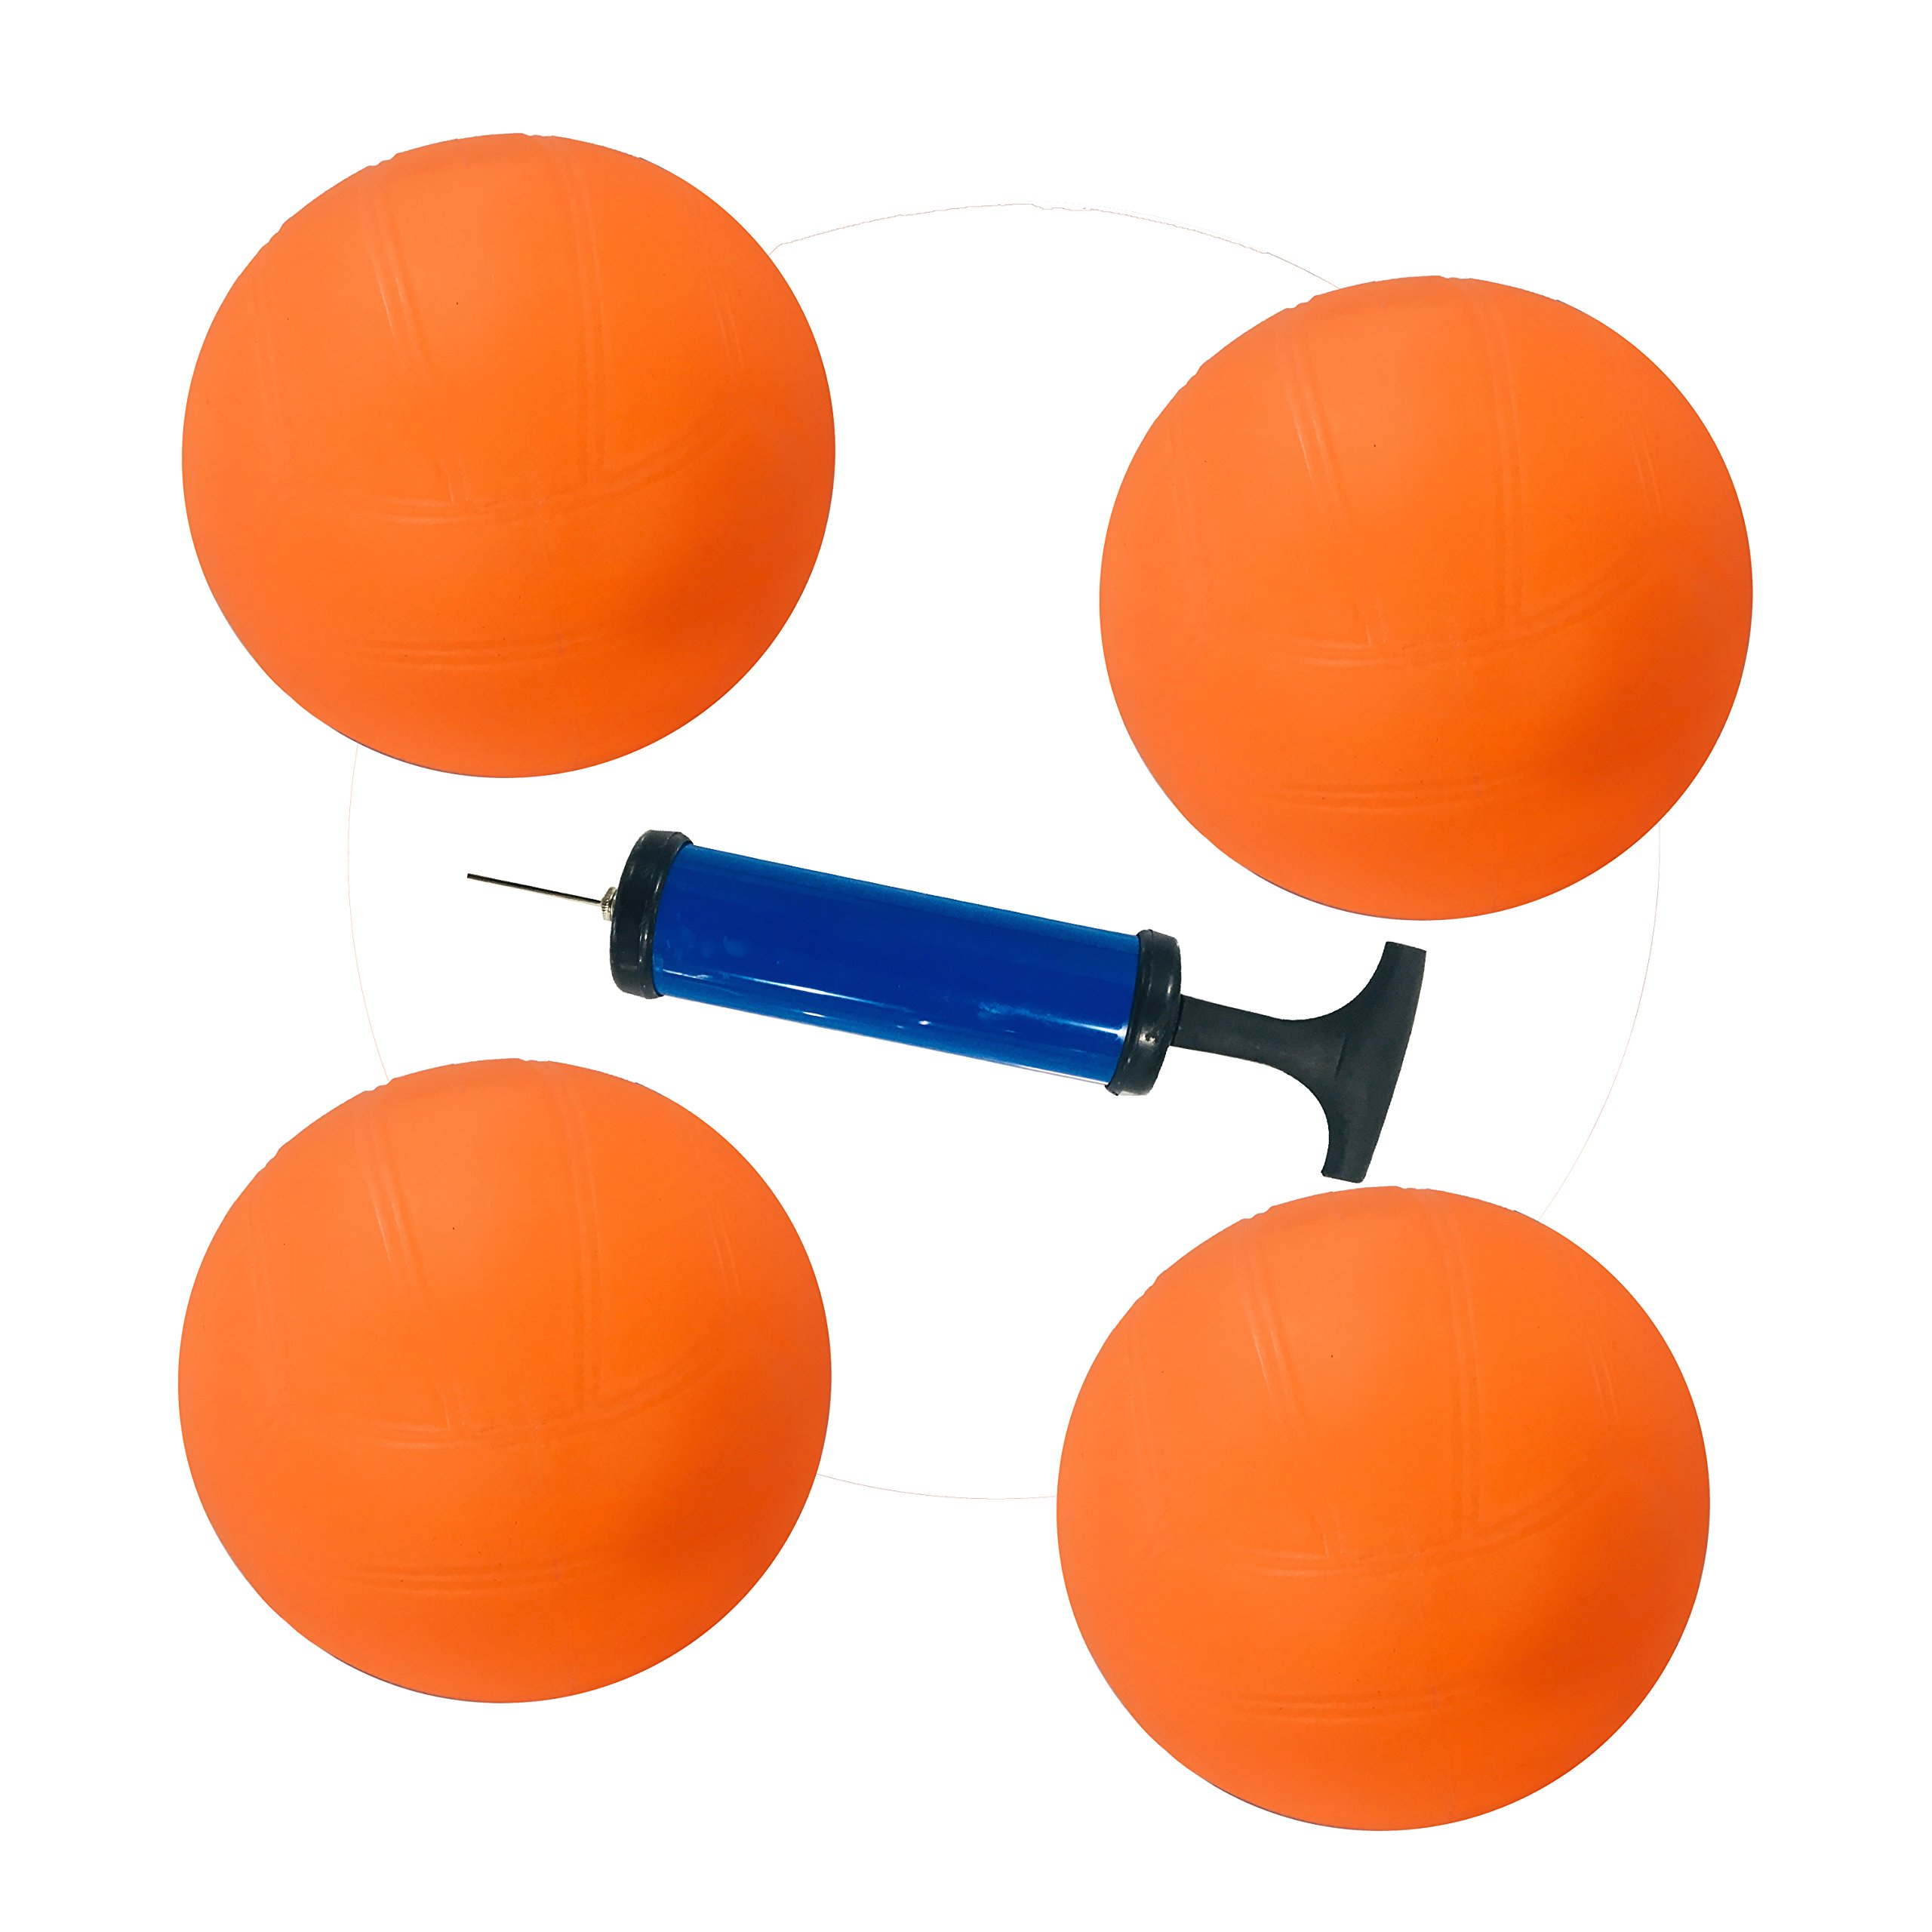 Sportbeats Durable 4 Balls with 1 Hand Pump for Exciting Fast Paced Outdoor Lawn Games, Yard, Outdoor, Indoor, Beach, Tailgate Games,Great Gift for Adults, Kids, Family